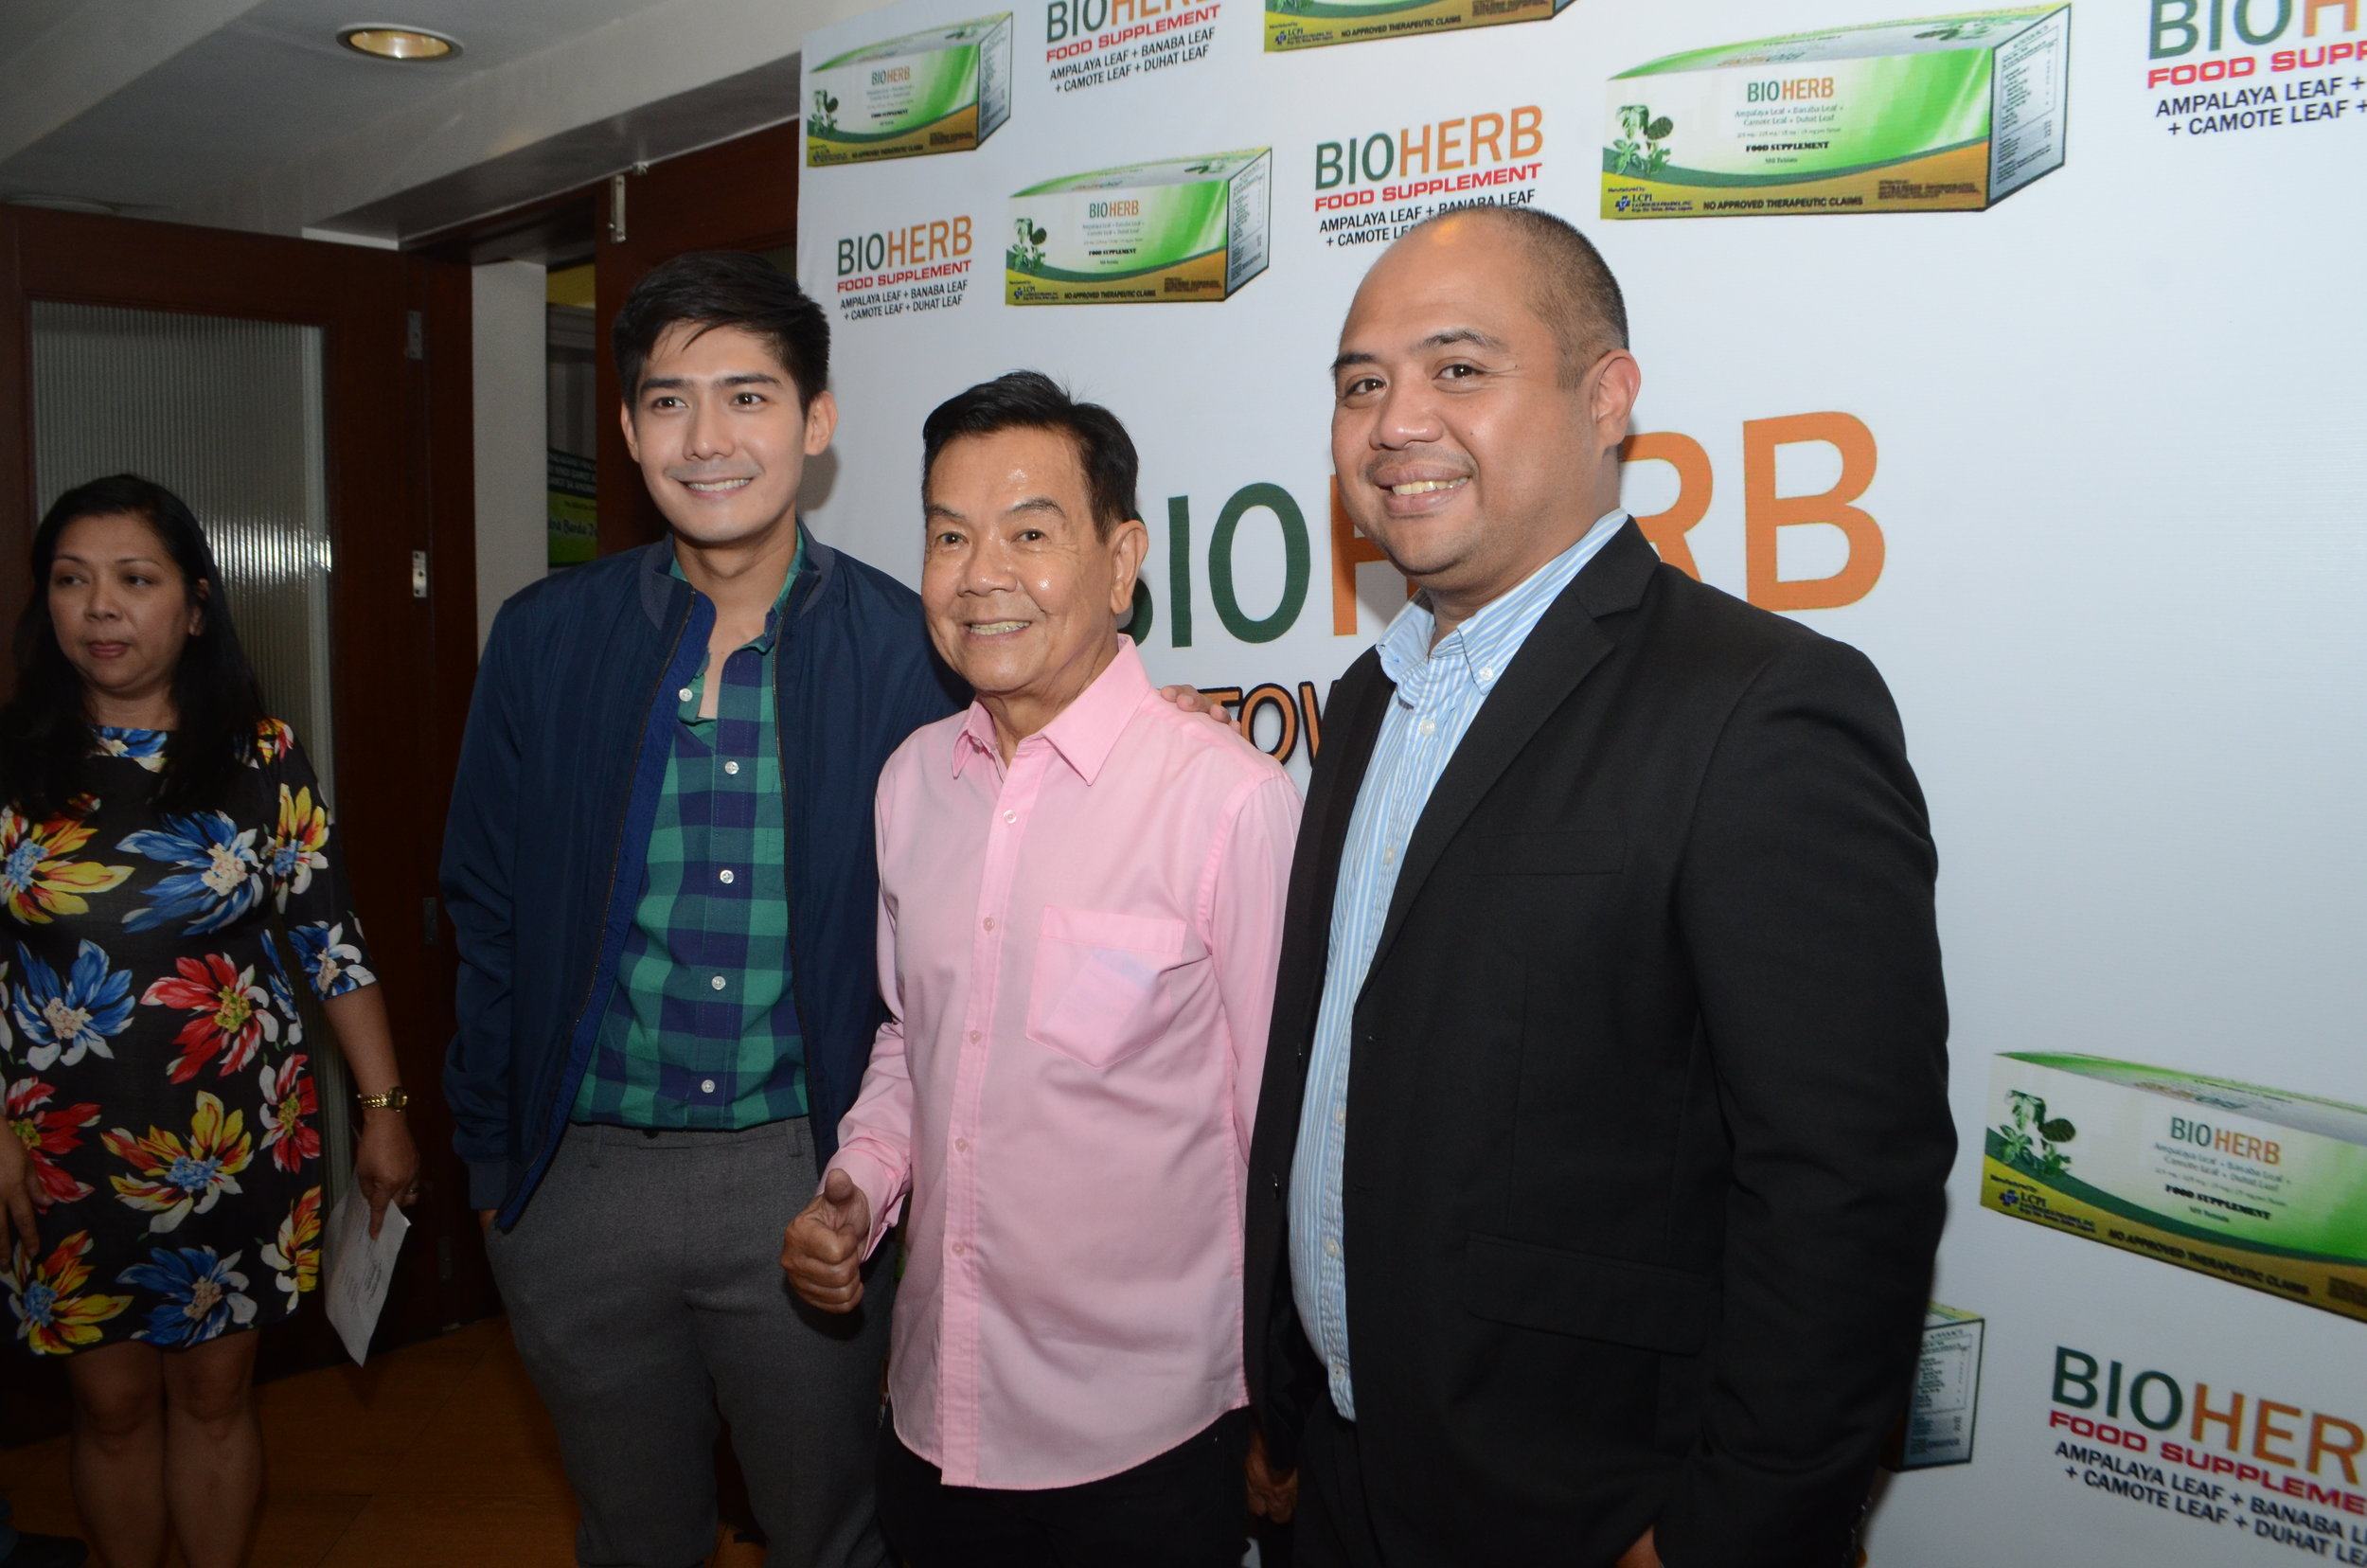 Robi Domingo joins Dr. Jaime Galvez Tan, and NutraBerde President Mark Lopez at the launch of BioHerb at Mario's on T. Morato